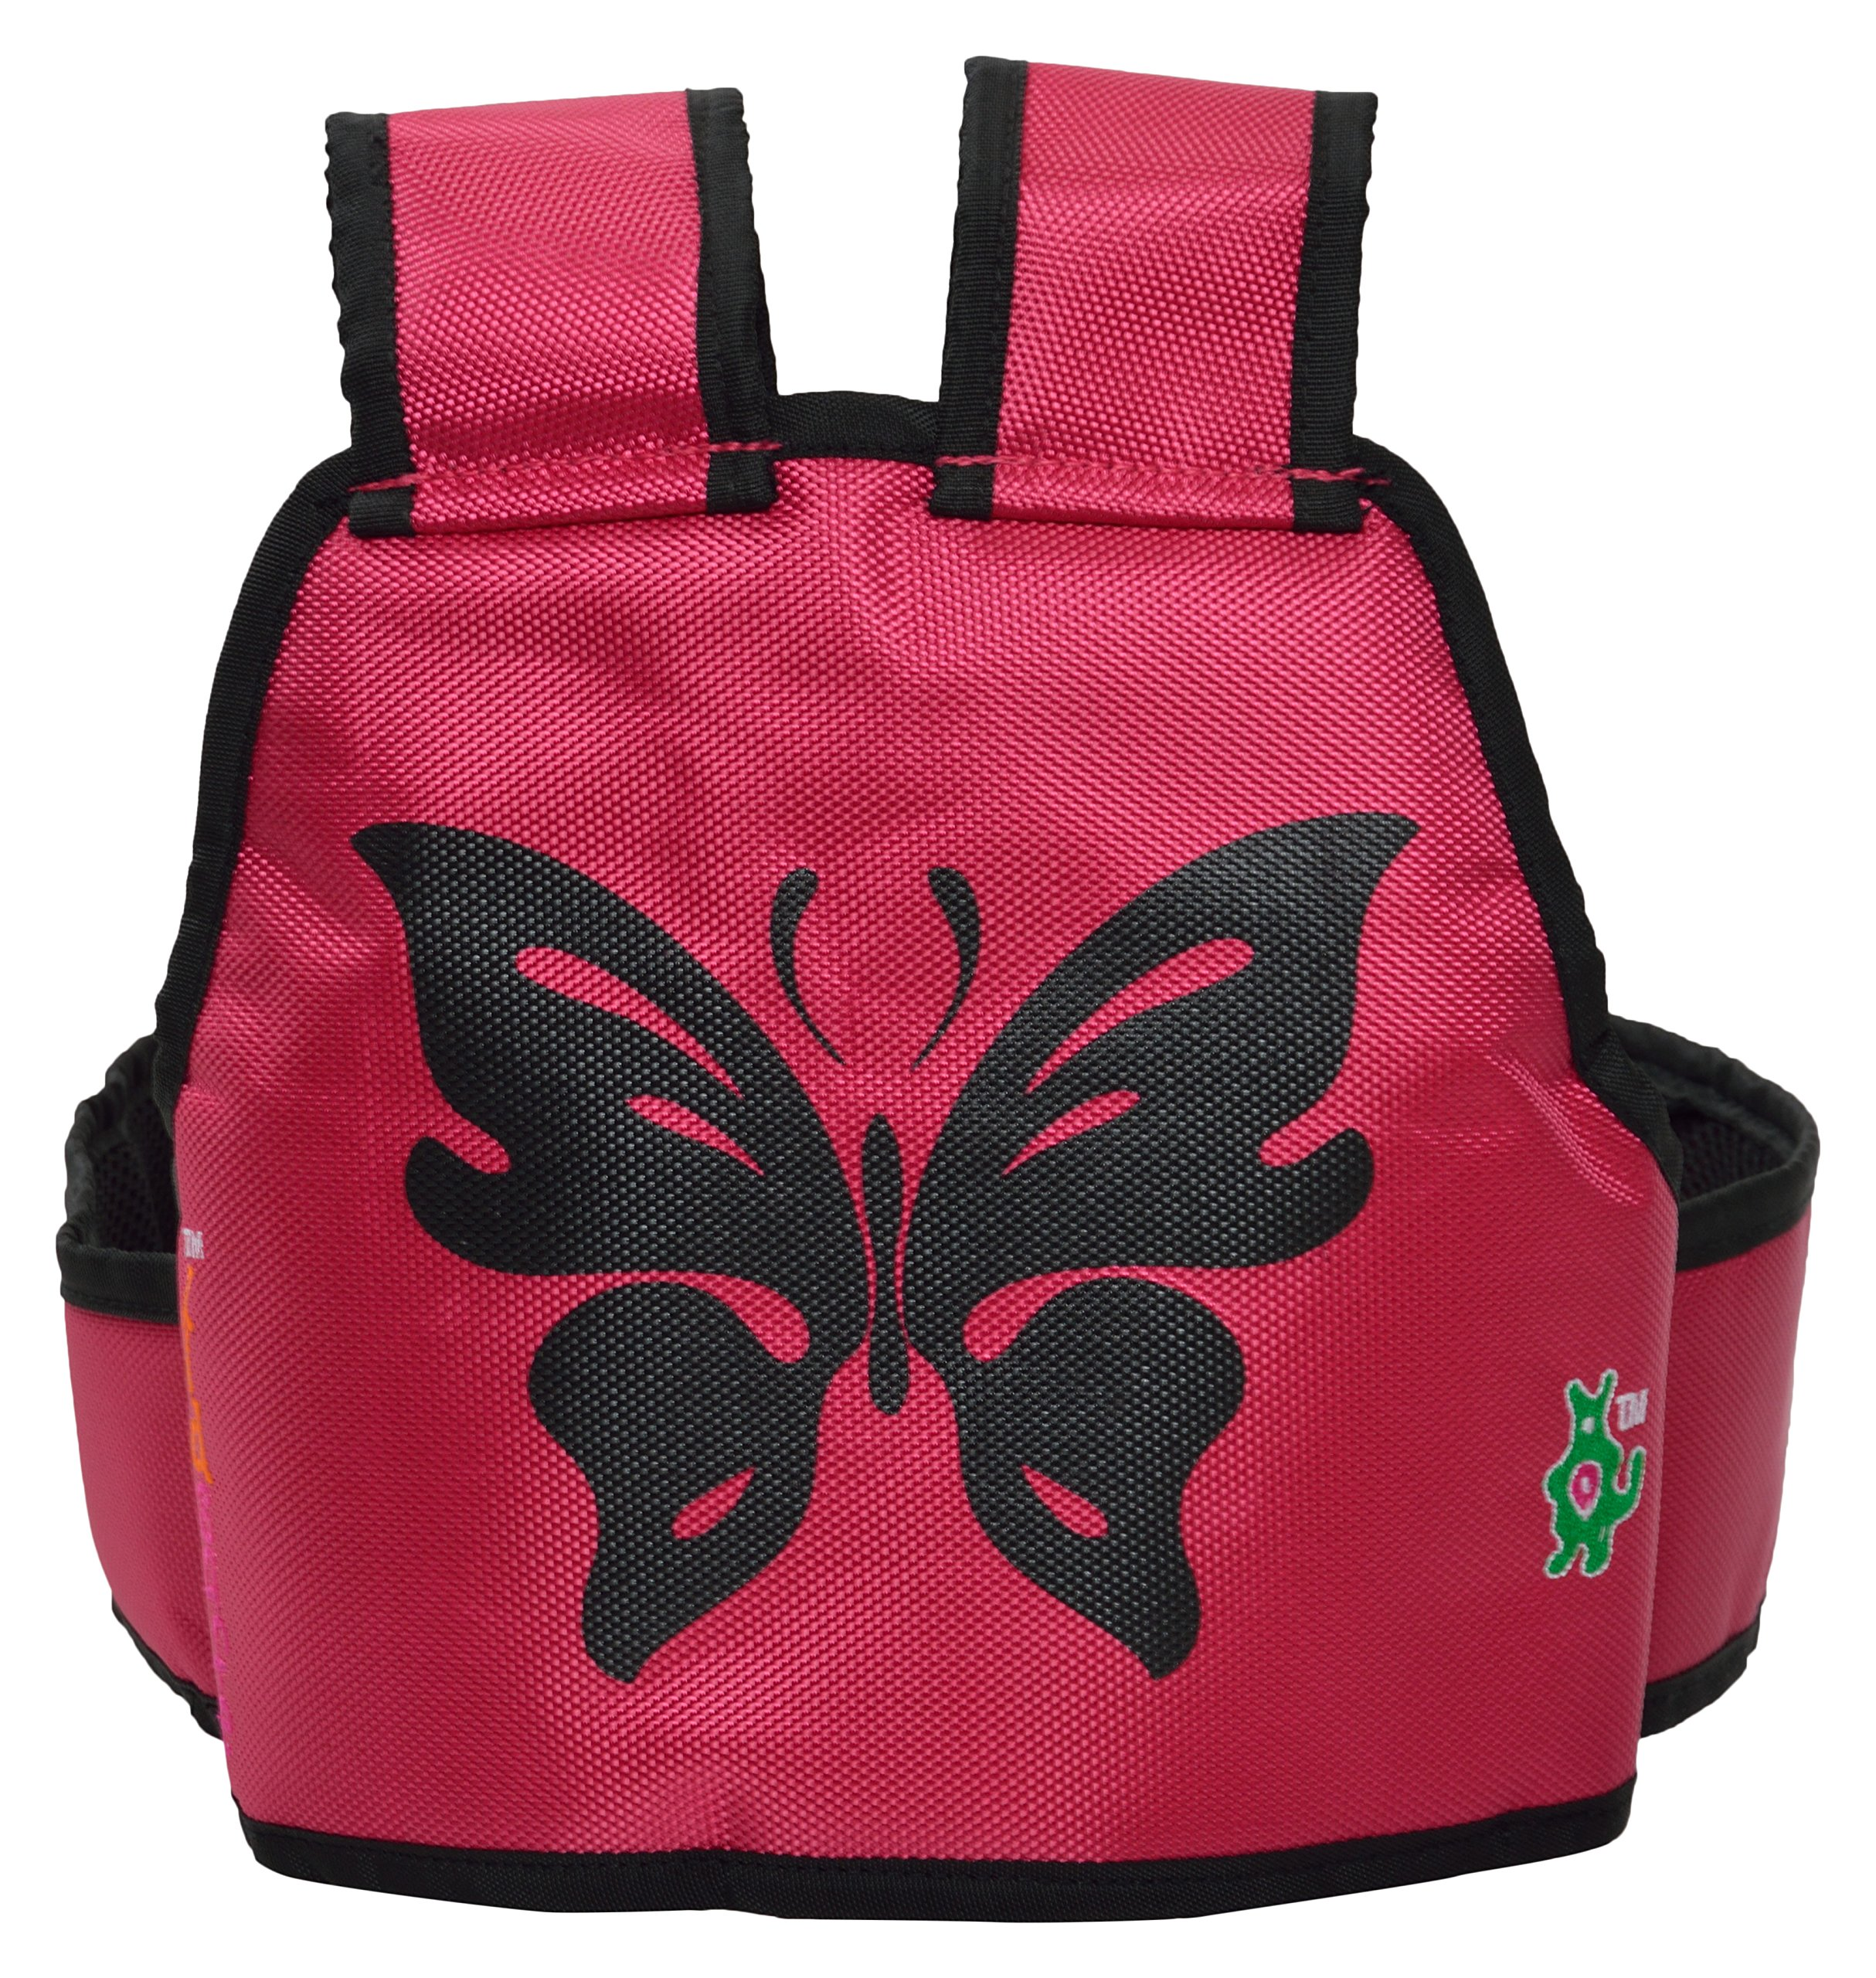 Kidsafe Belt - Two Wheeler Child Safety Belt - Cool Pink Butterfly by Kid-Safe (Image #4)